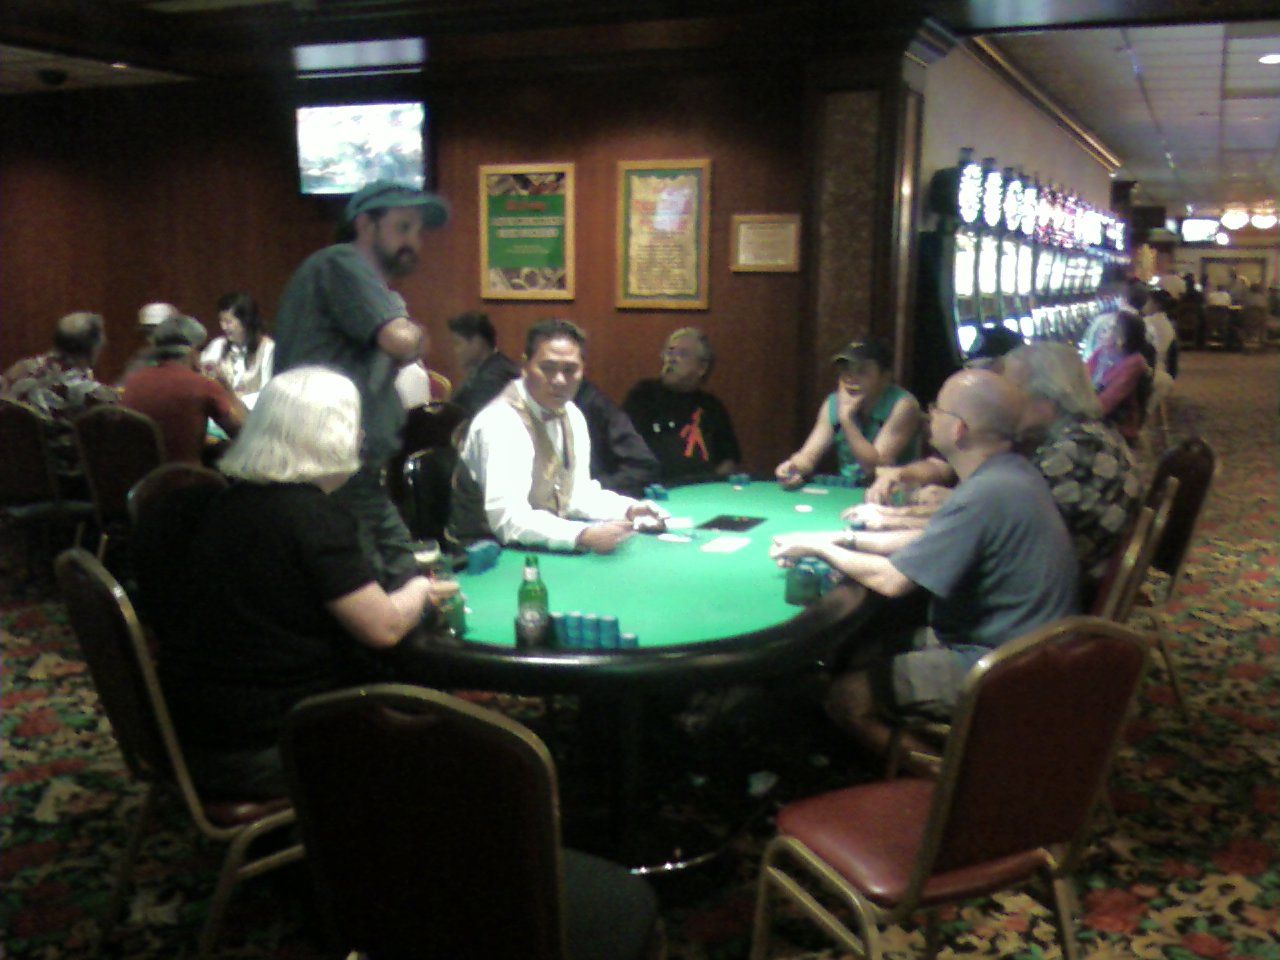 Spokane poker